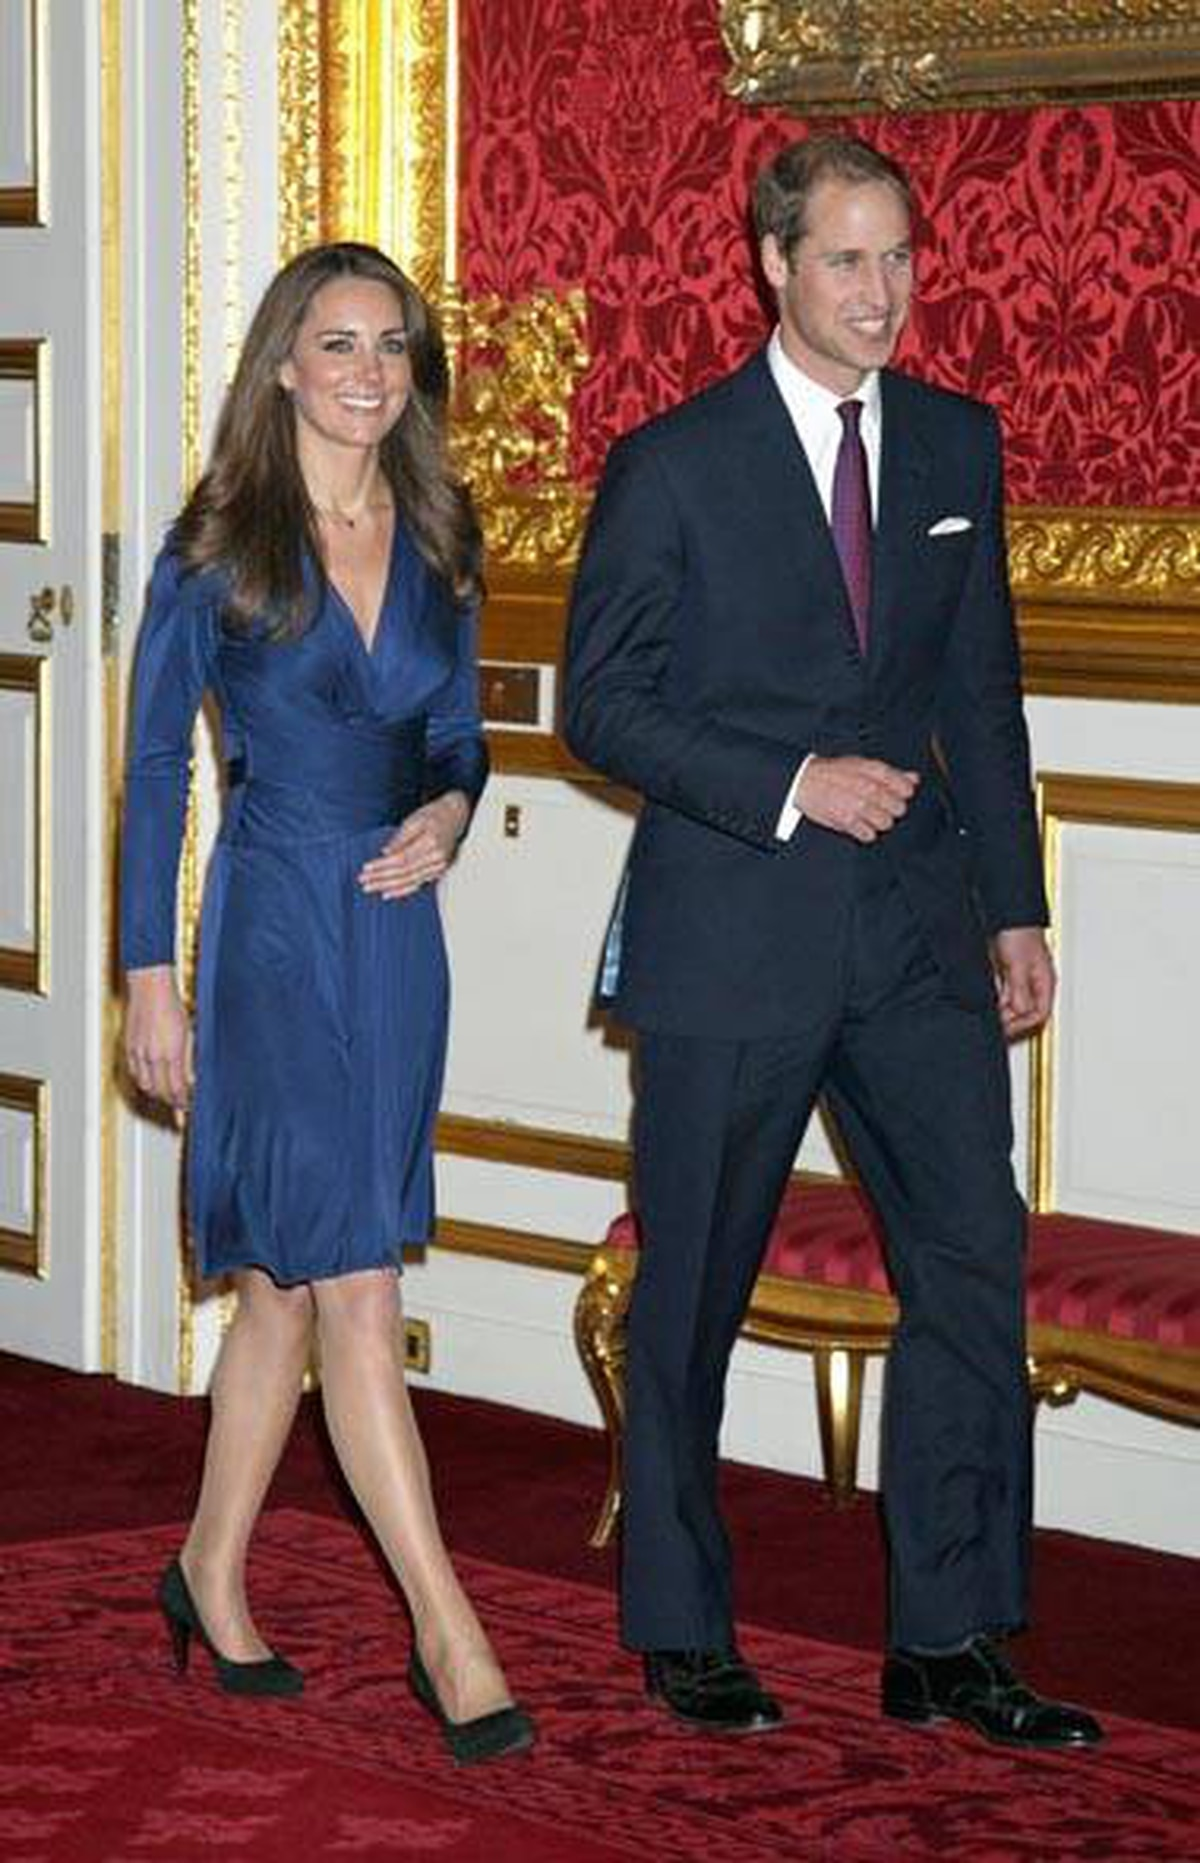 Way to colour co-ordinate, Kate. For the engagement announcement, she sported another body-conscious dress, this time in slinky sapphire. Perhaps to match her new bling?